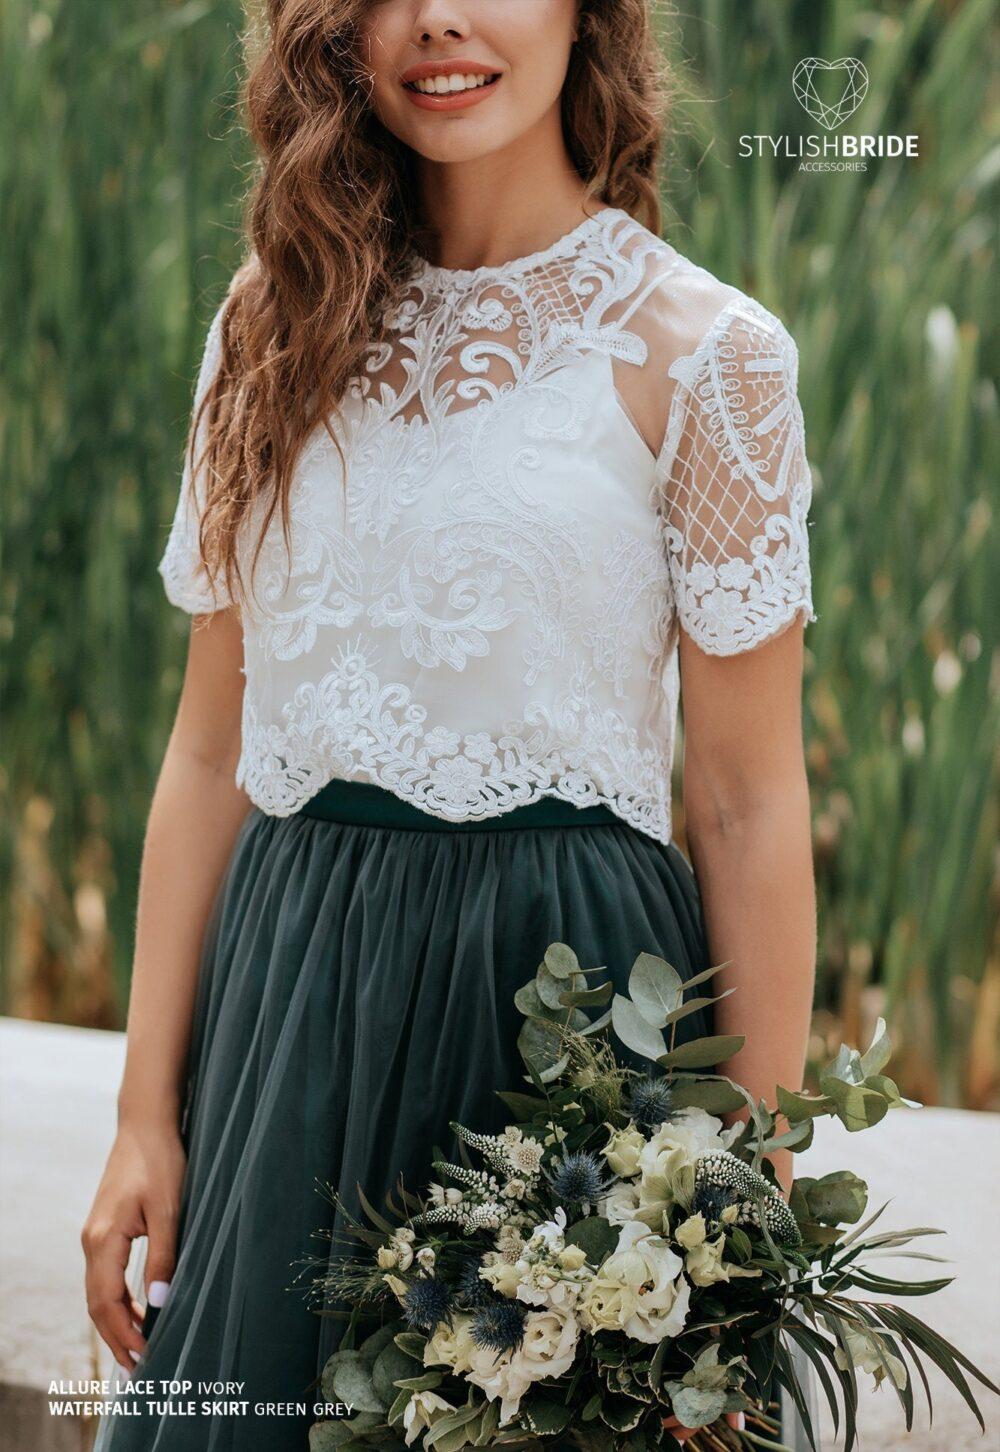 Allure Buttoned Back Bridesmaids Lace Crop Top Available in Plus Size With Silk Under Top - 2 Pieces Set, Evening Bridal Blouse